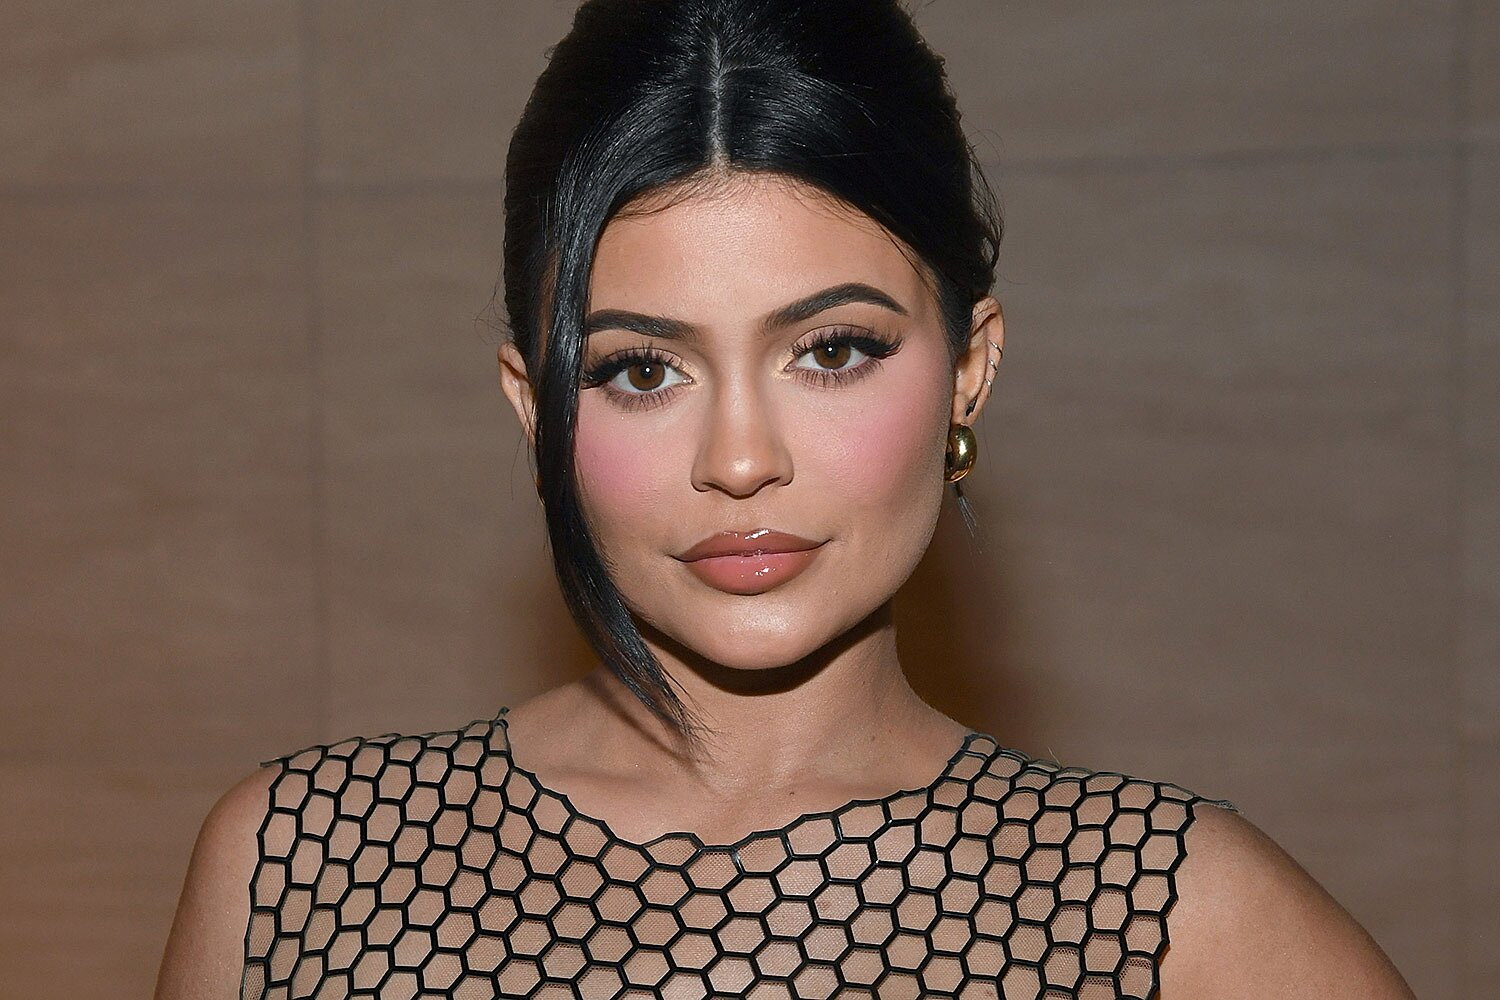 Kylie Jenner's Daughter, Stormi Webster, Is All Grown Up And Appears Different In New Photos - Fans Say This Is Who She Looks Like Now - US Daily Report